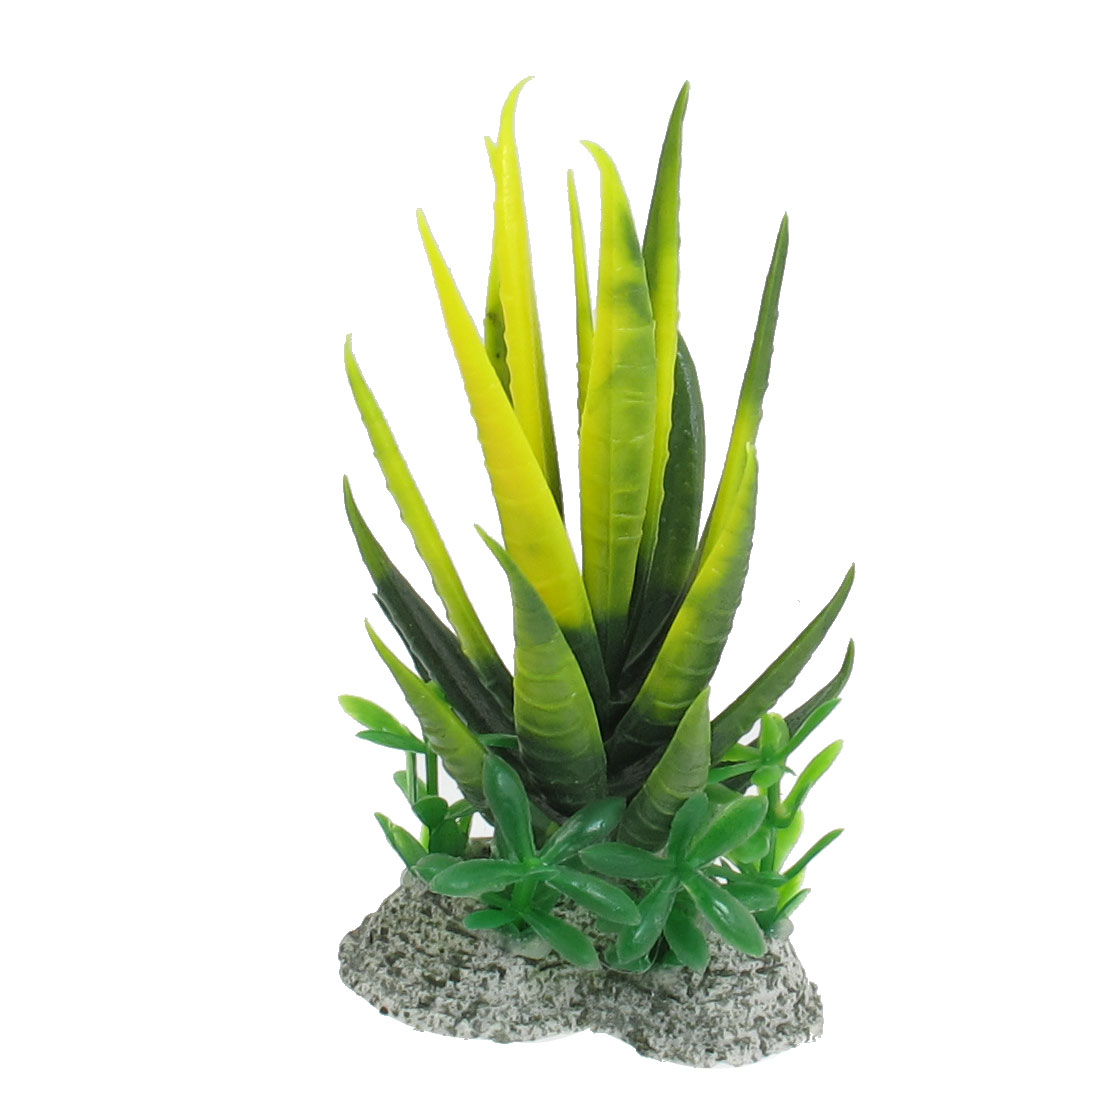 Green Yellow Plastic Decoration Ornament Aquarium Plant for Fish Tank 4.3""